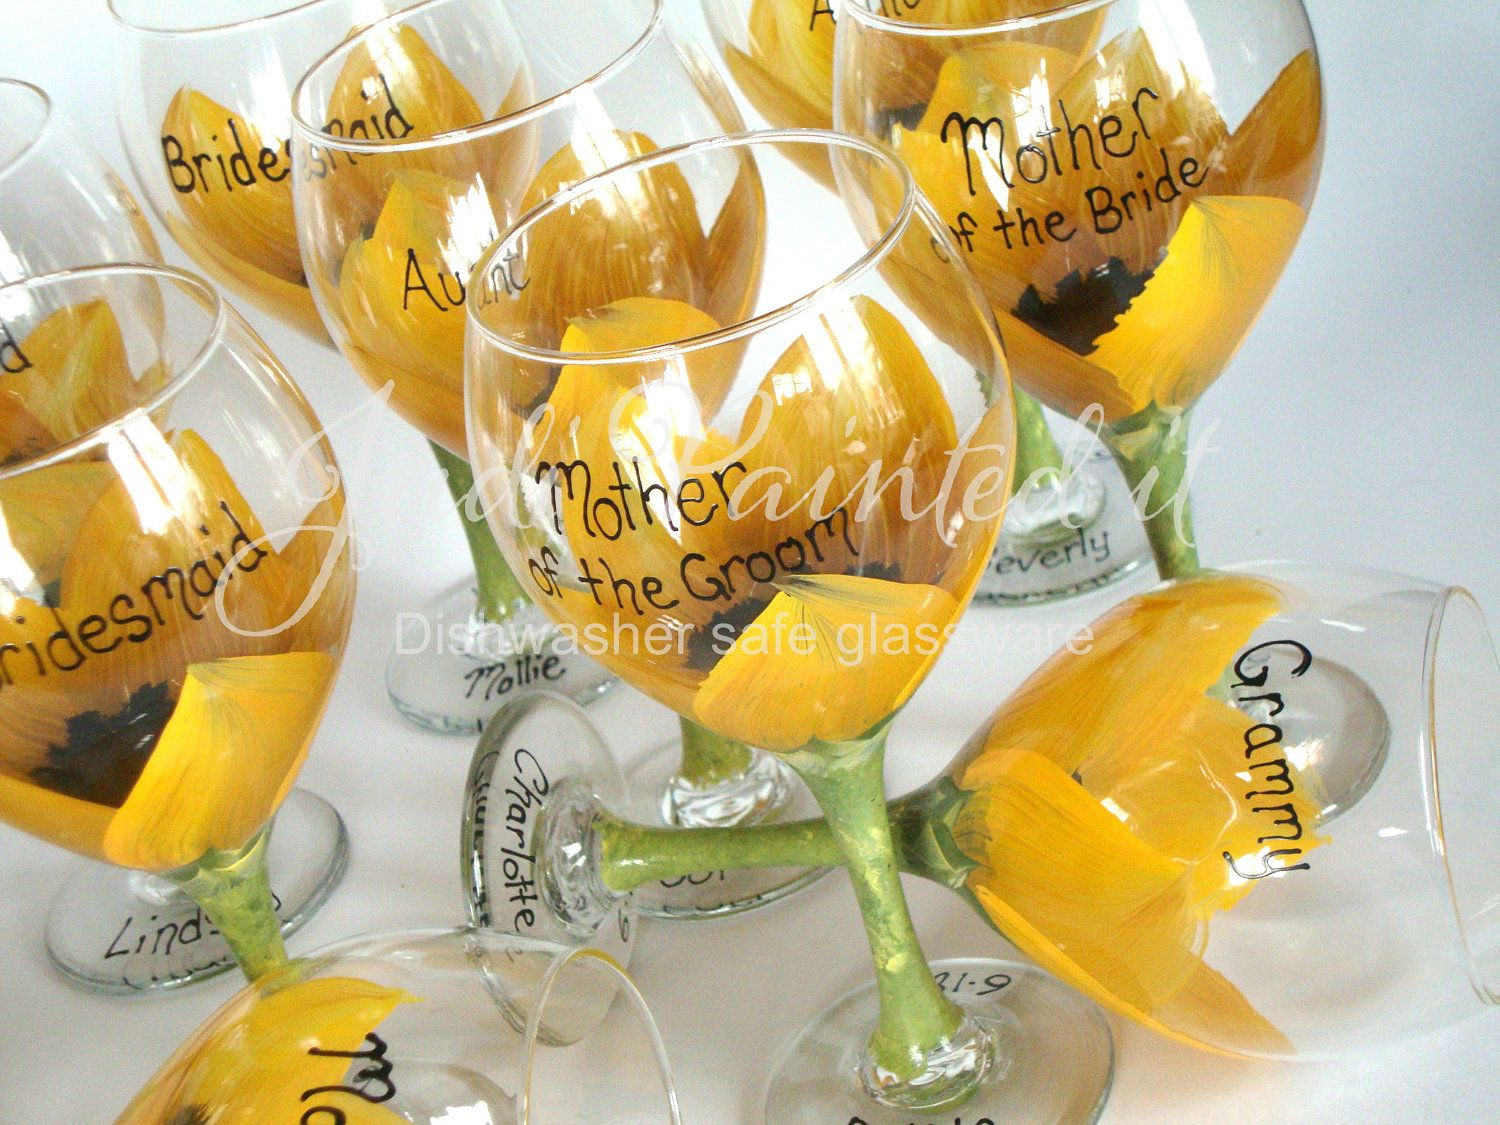 Sunflower wedding decor, Bridal party wine glasses, wedding favors ...